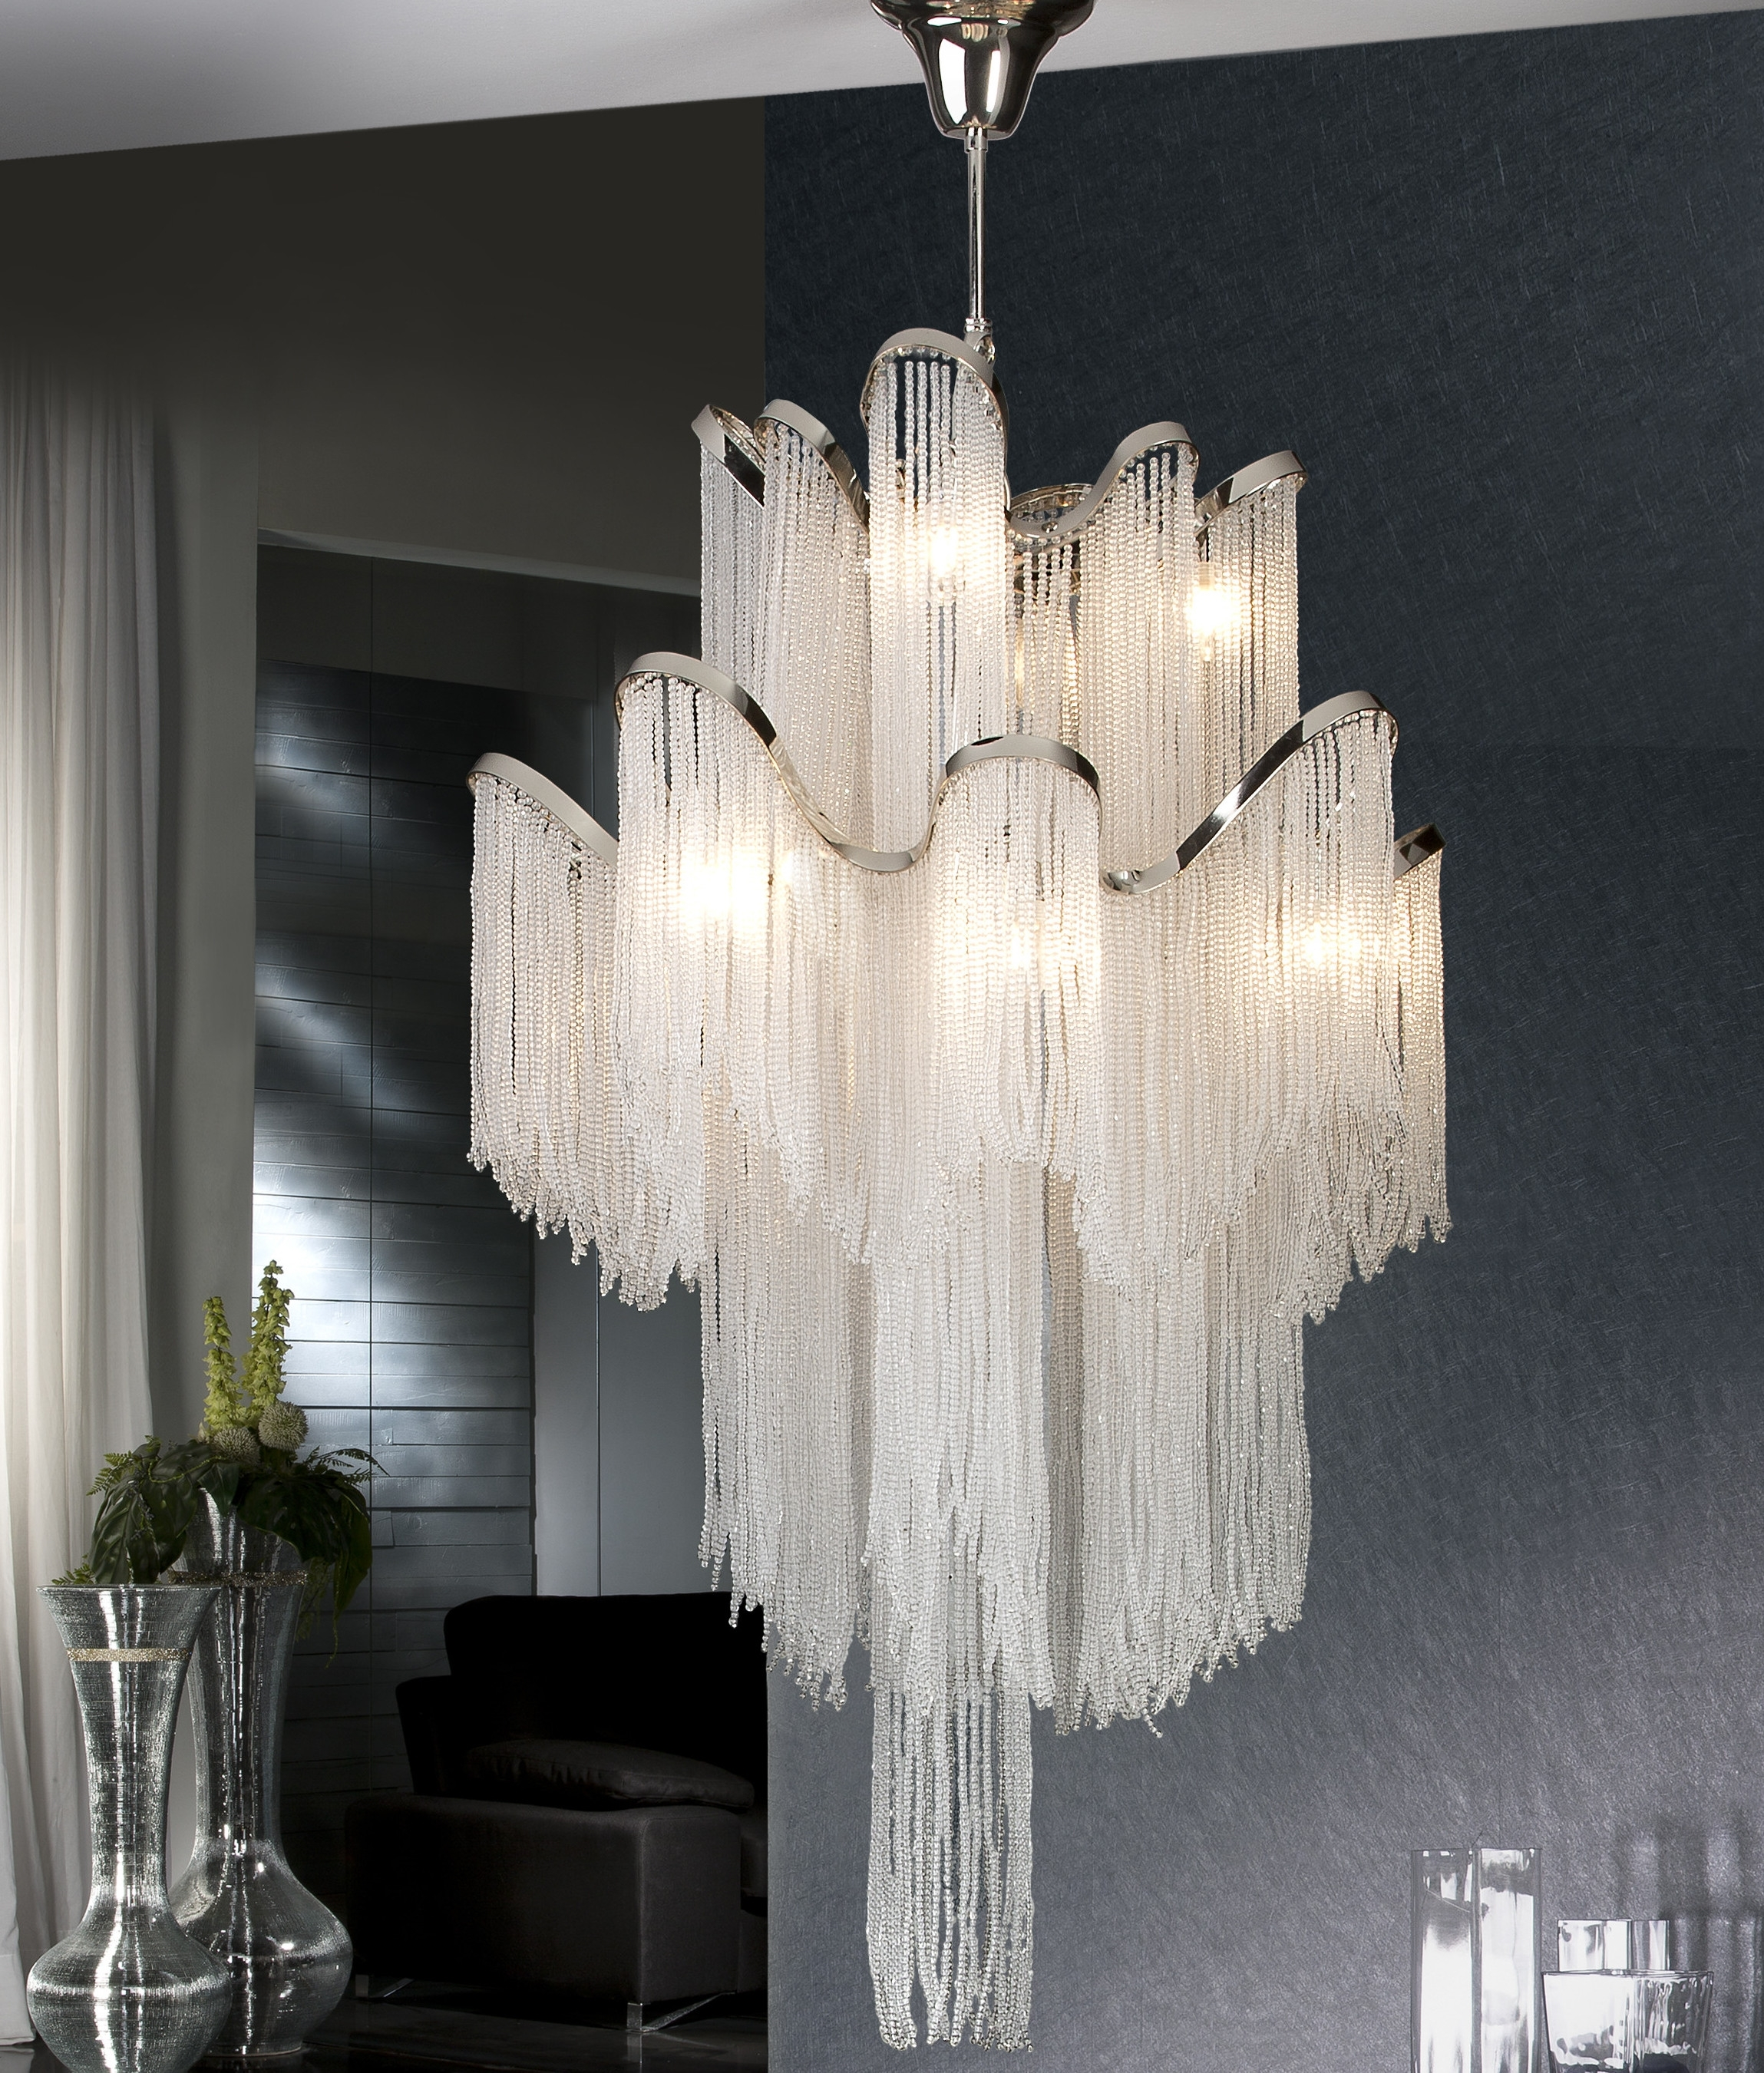 15 long chandelier lights chandelier ideas long chandelier lighting intended for long chandelier lights image 9 of 15 aloadofball